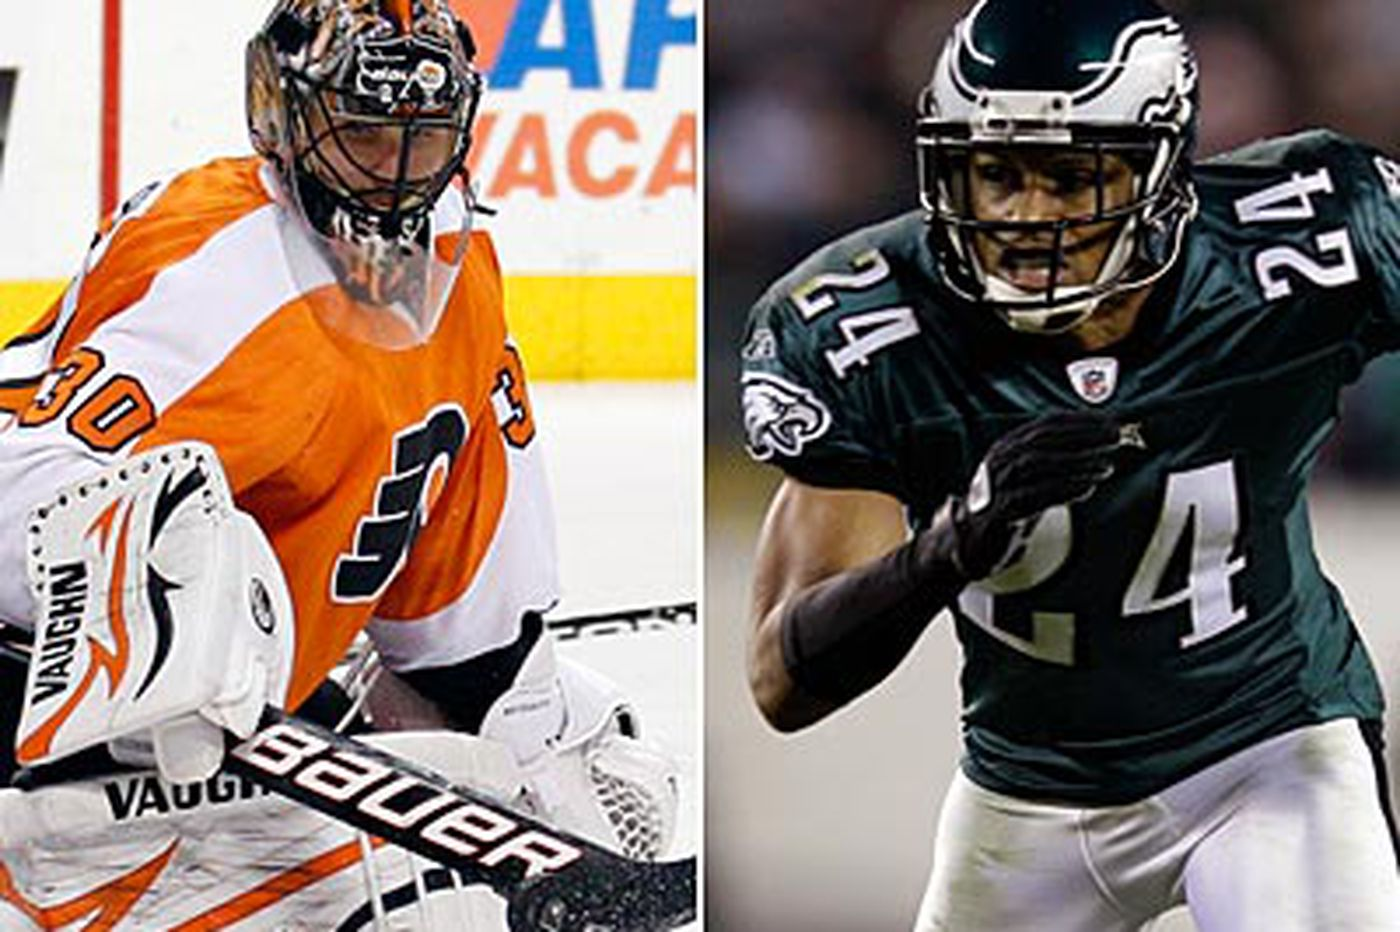 Phil Sheridan: Eagles could learn from Flyers about regime change